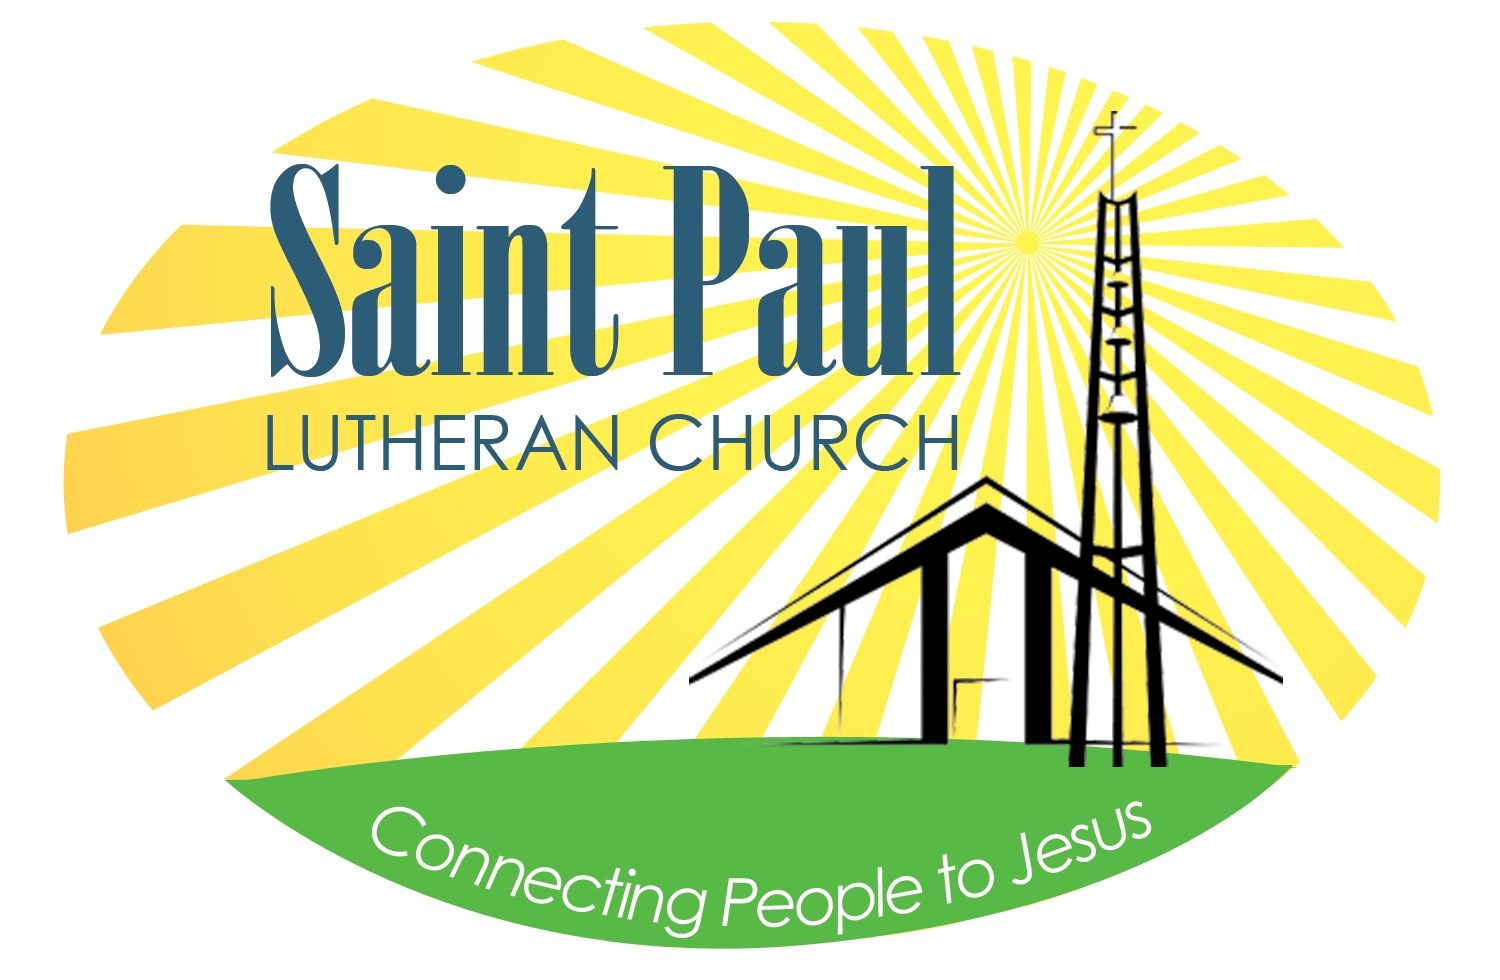 Connecting to St Paul – Aug 4, 2021